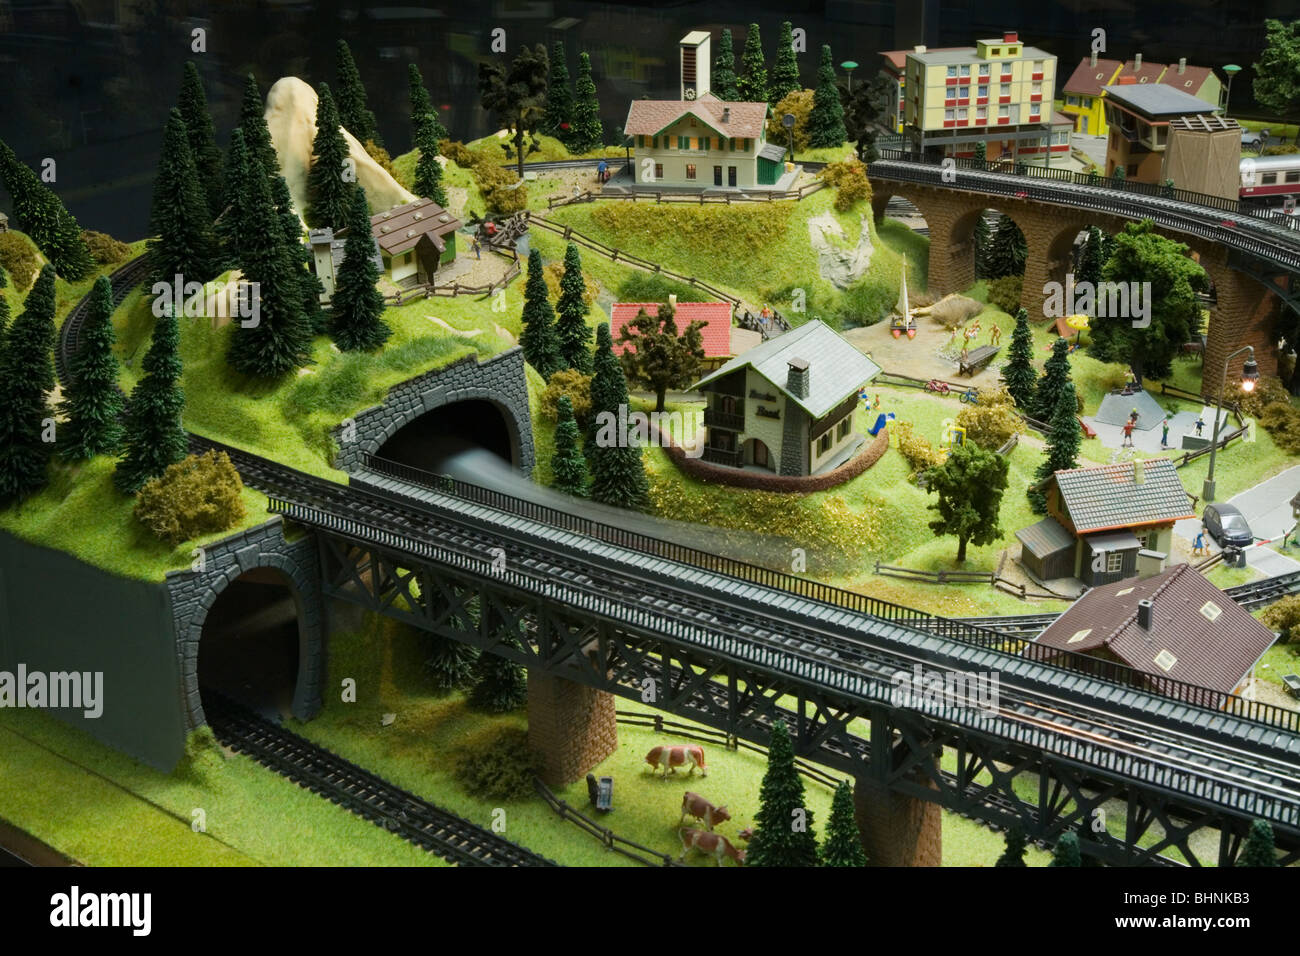 HO Scale Electric Model Toy train Large scale train set. Dresden Germany - Stock Image